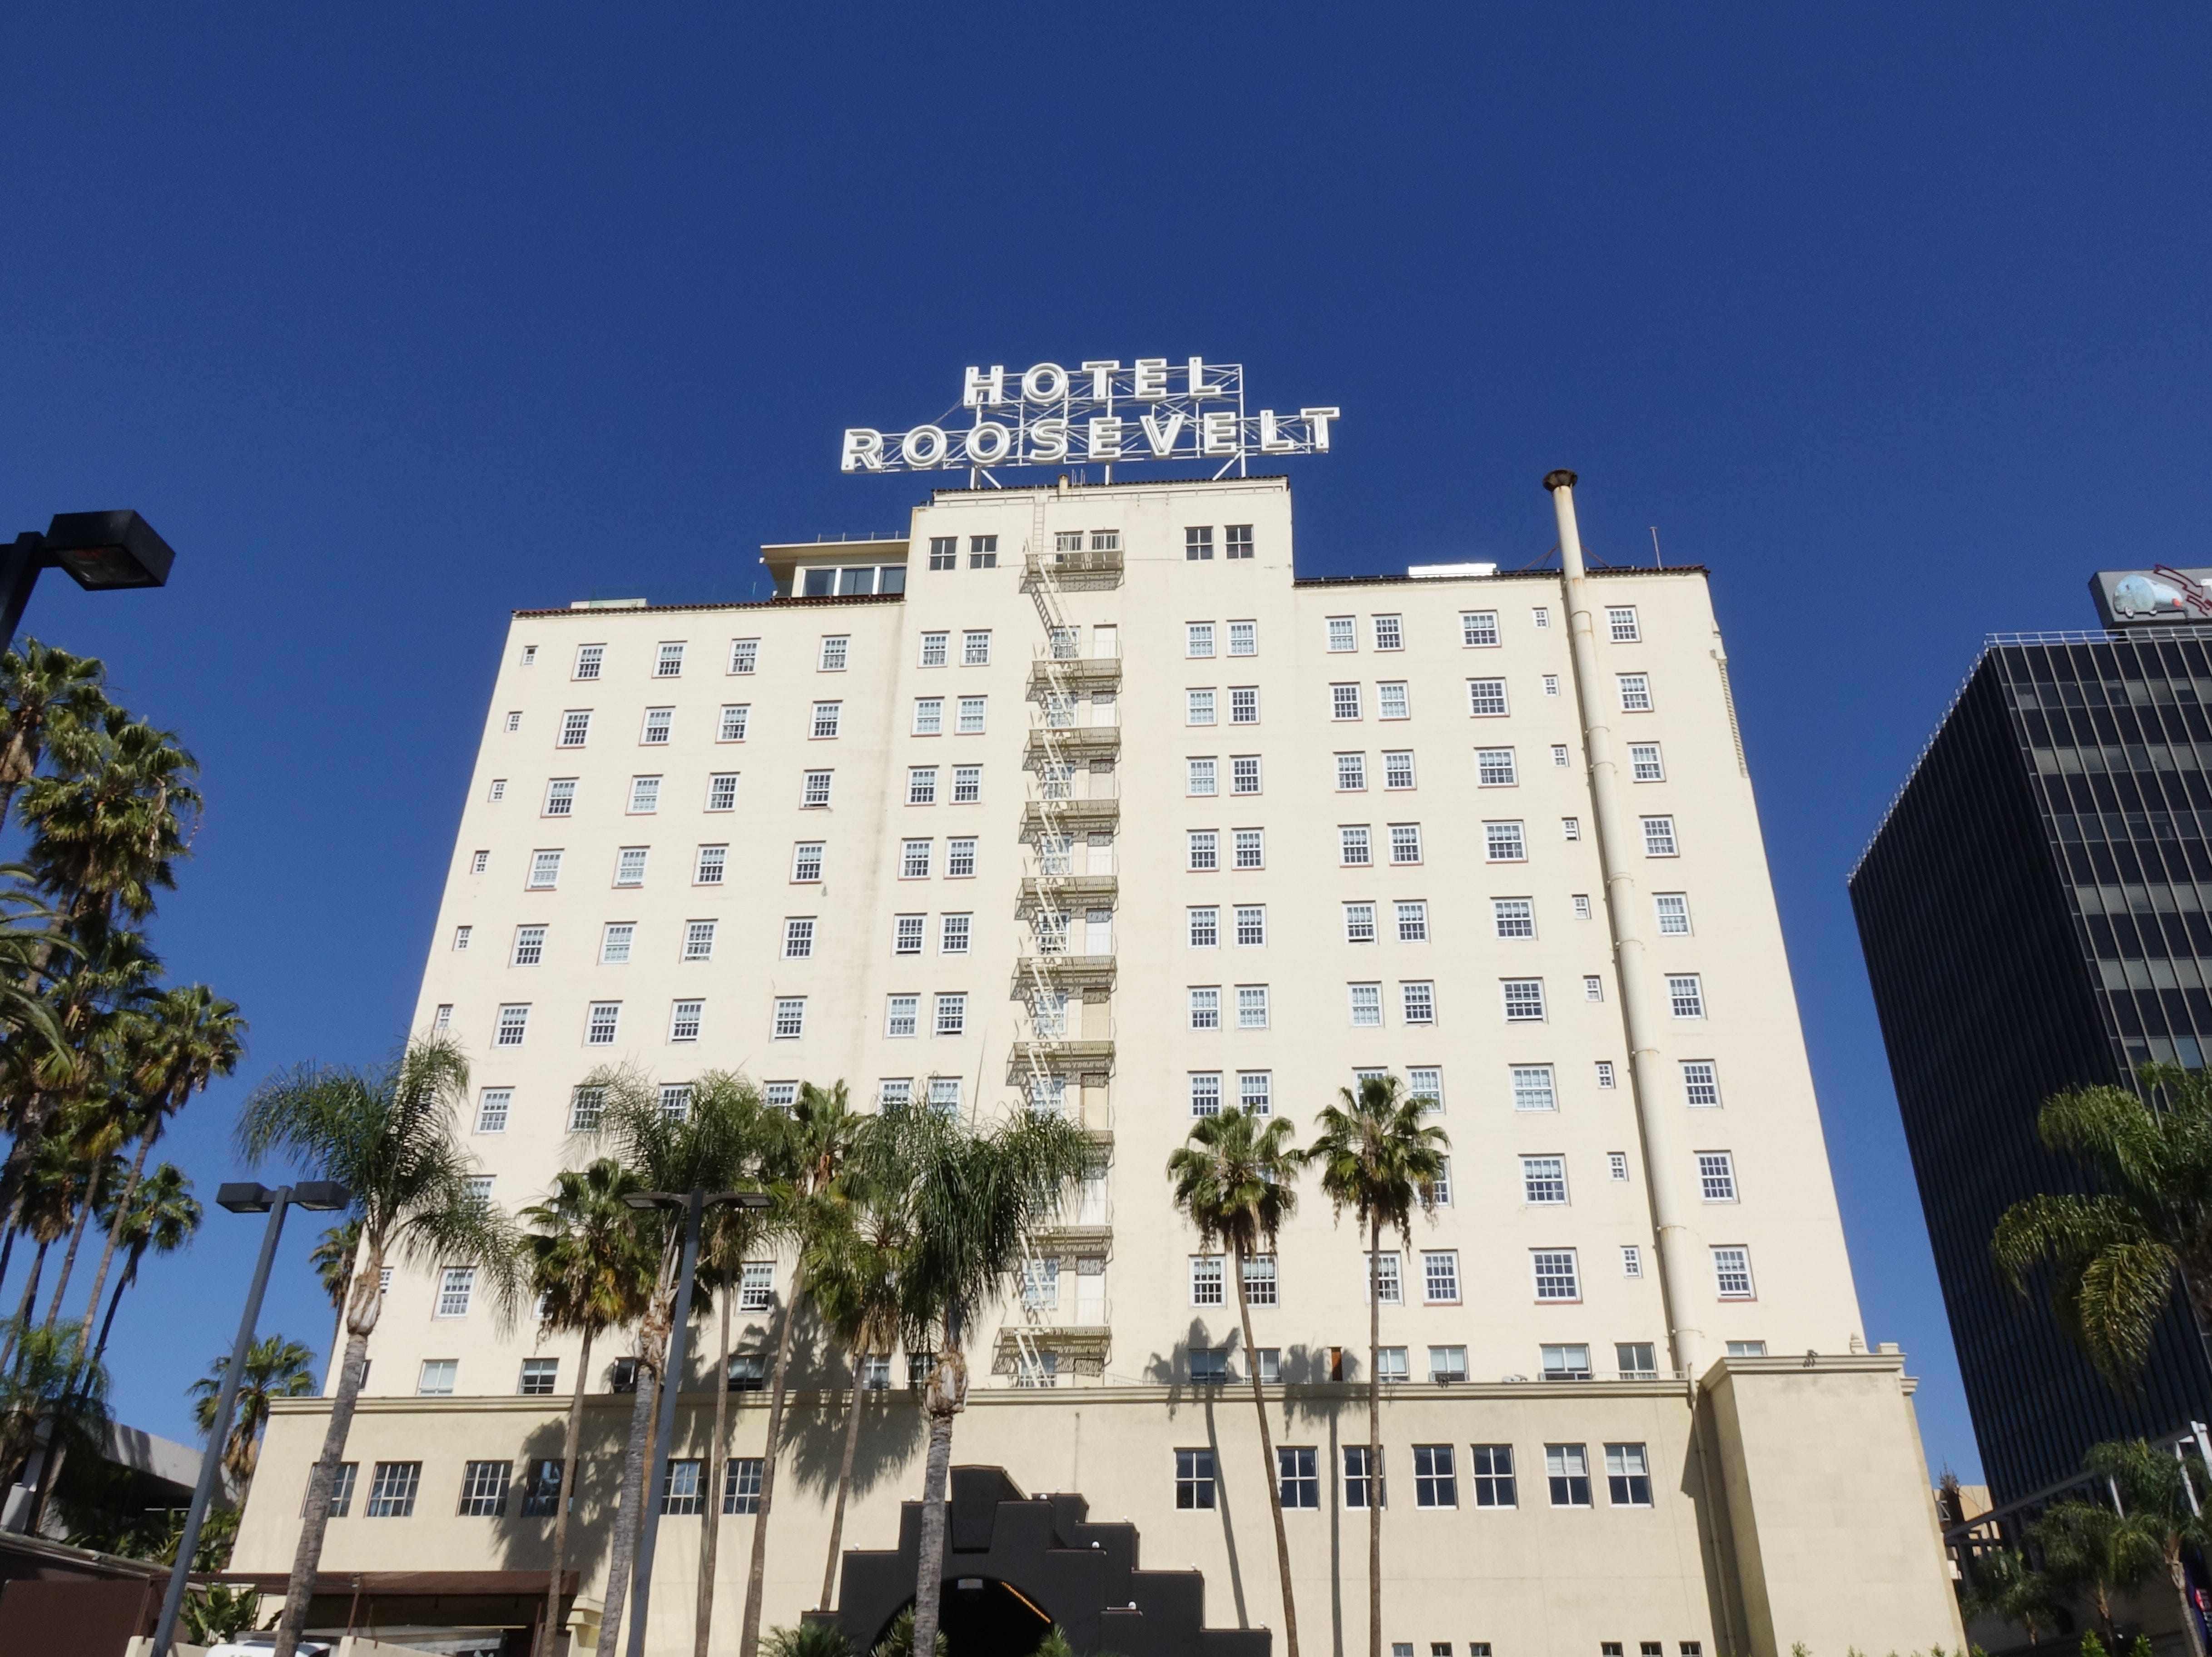 The Hotel Roosevelt in Hollywood